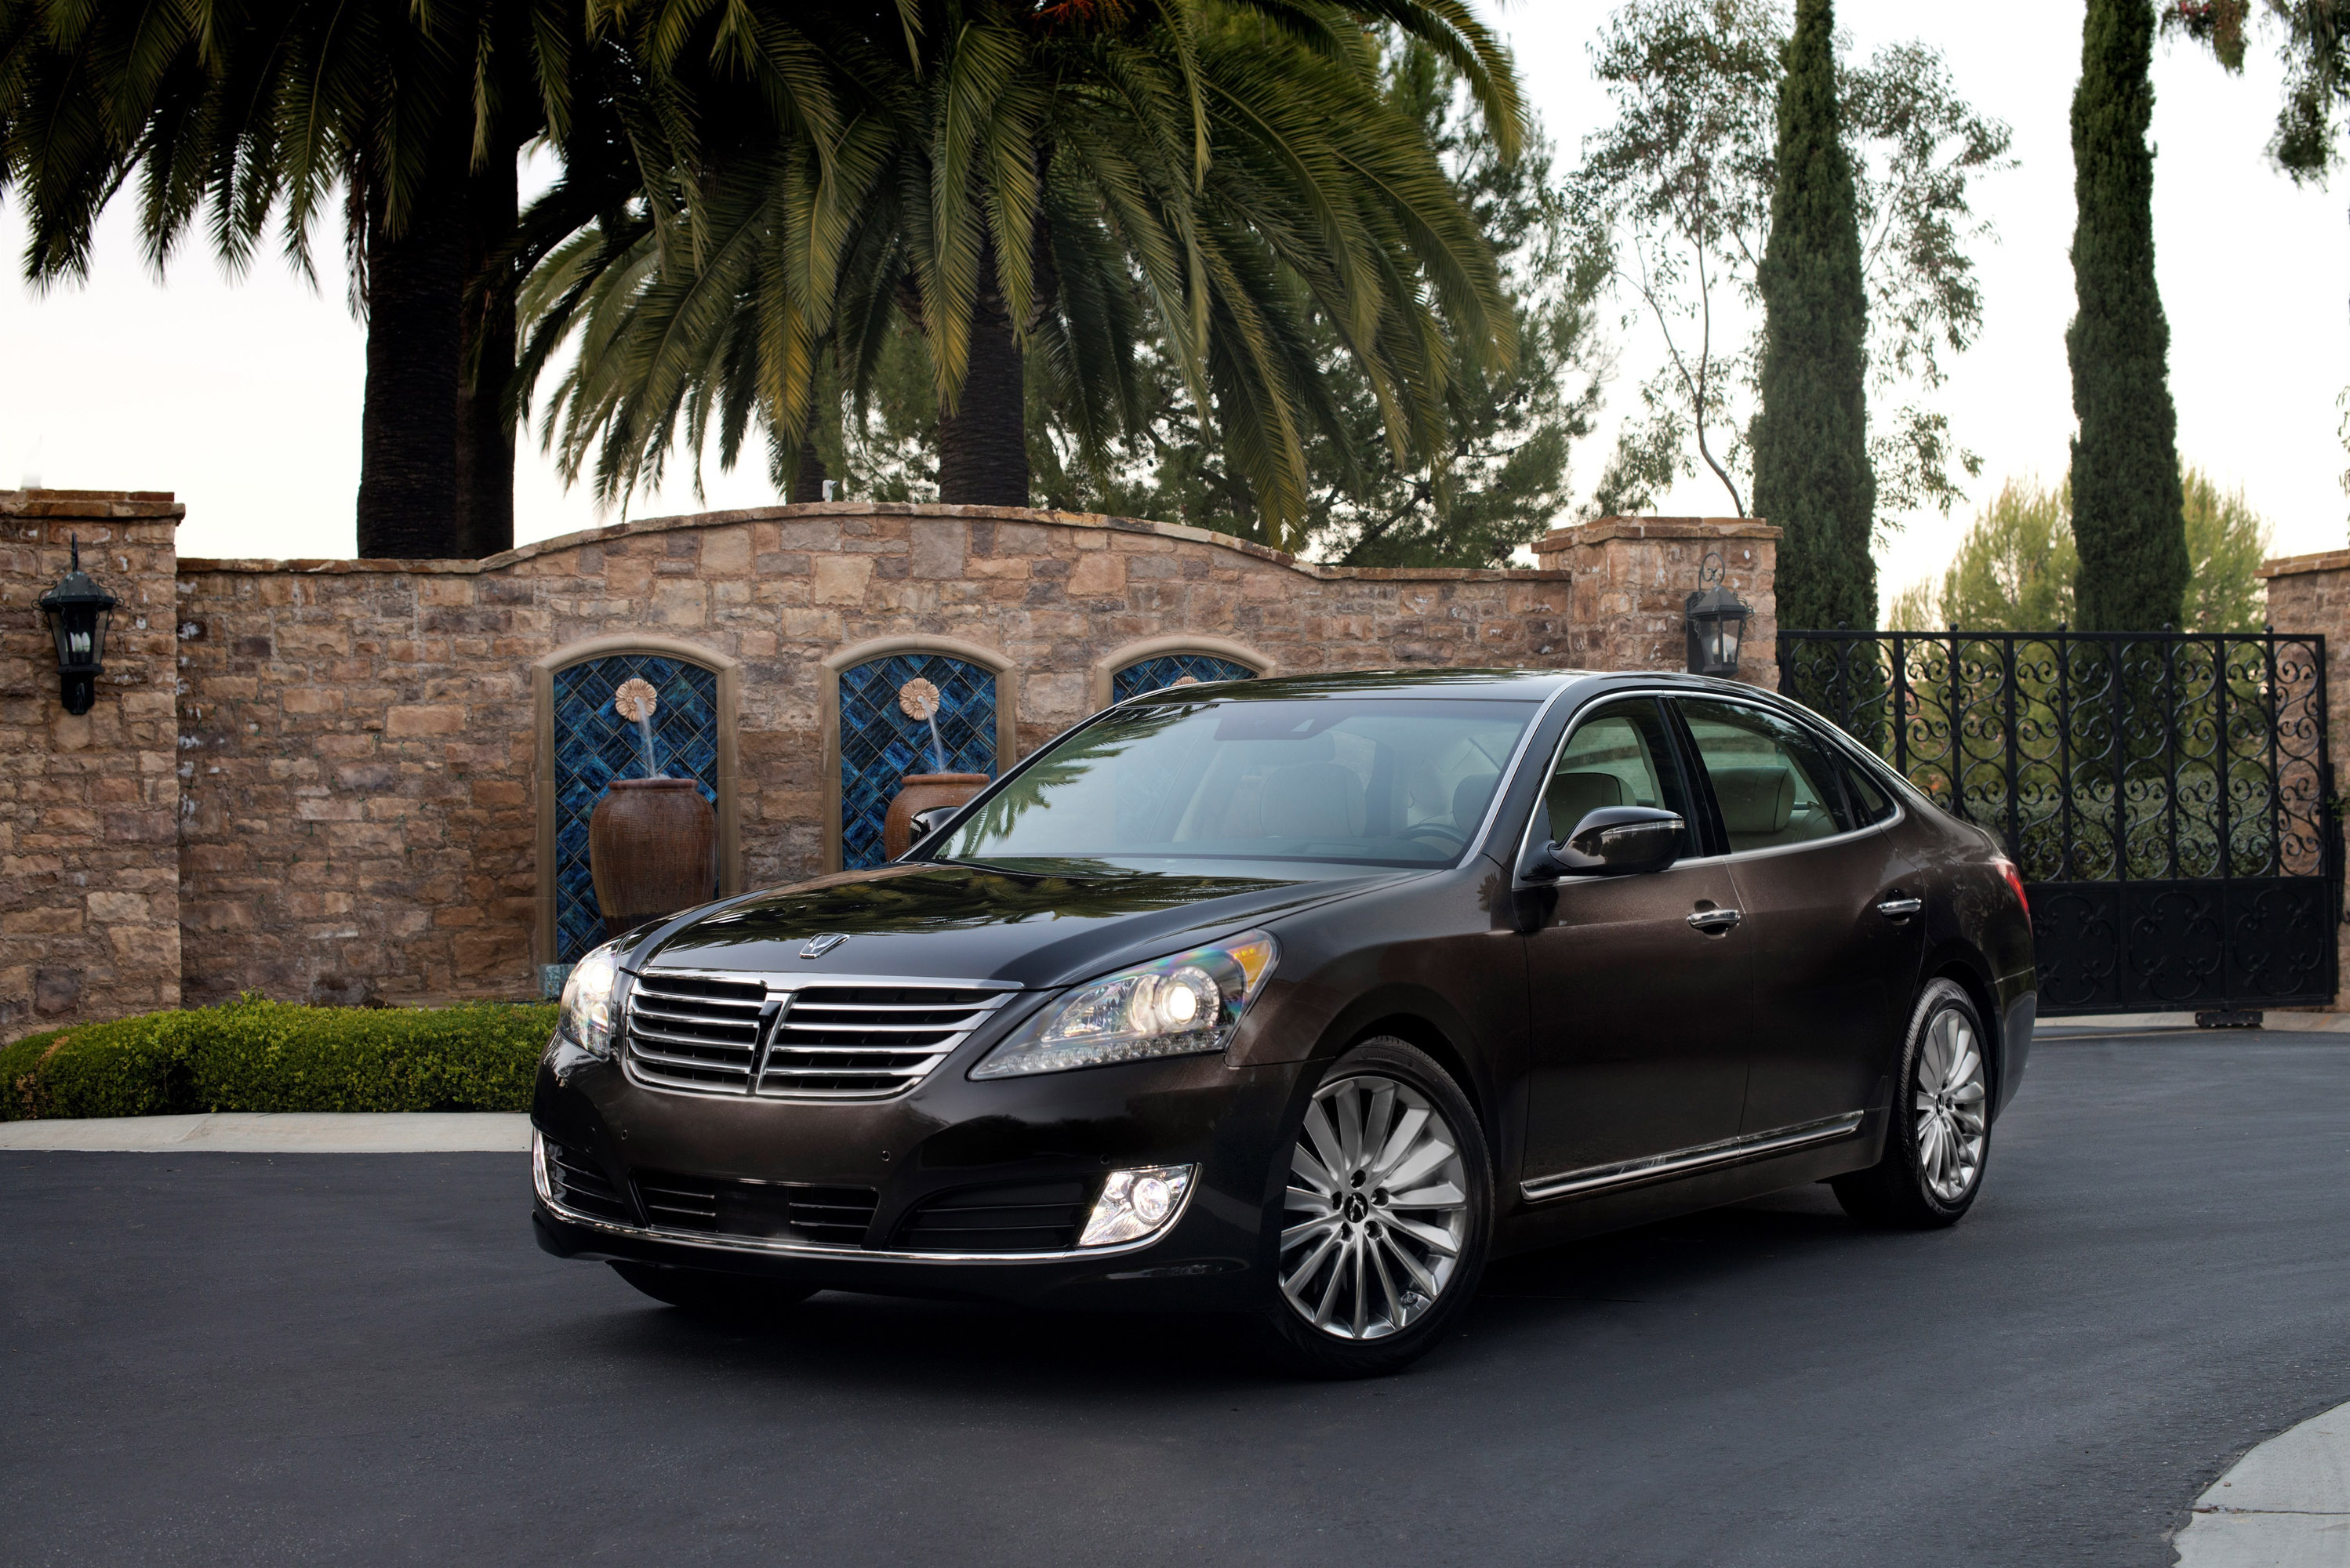 hyundai photo gallery information coupe some amazing and equus